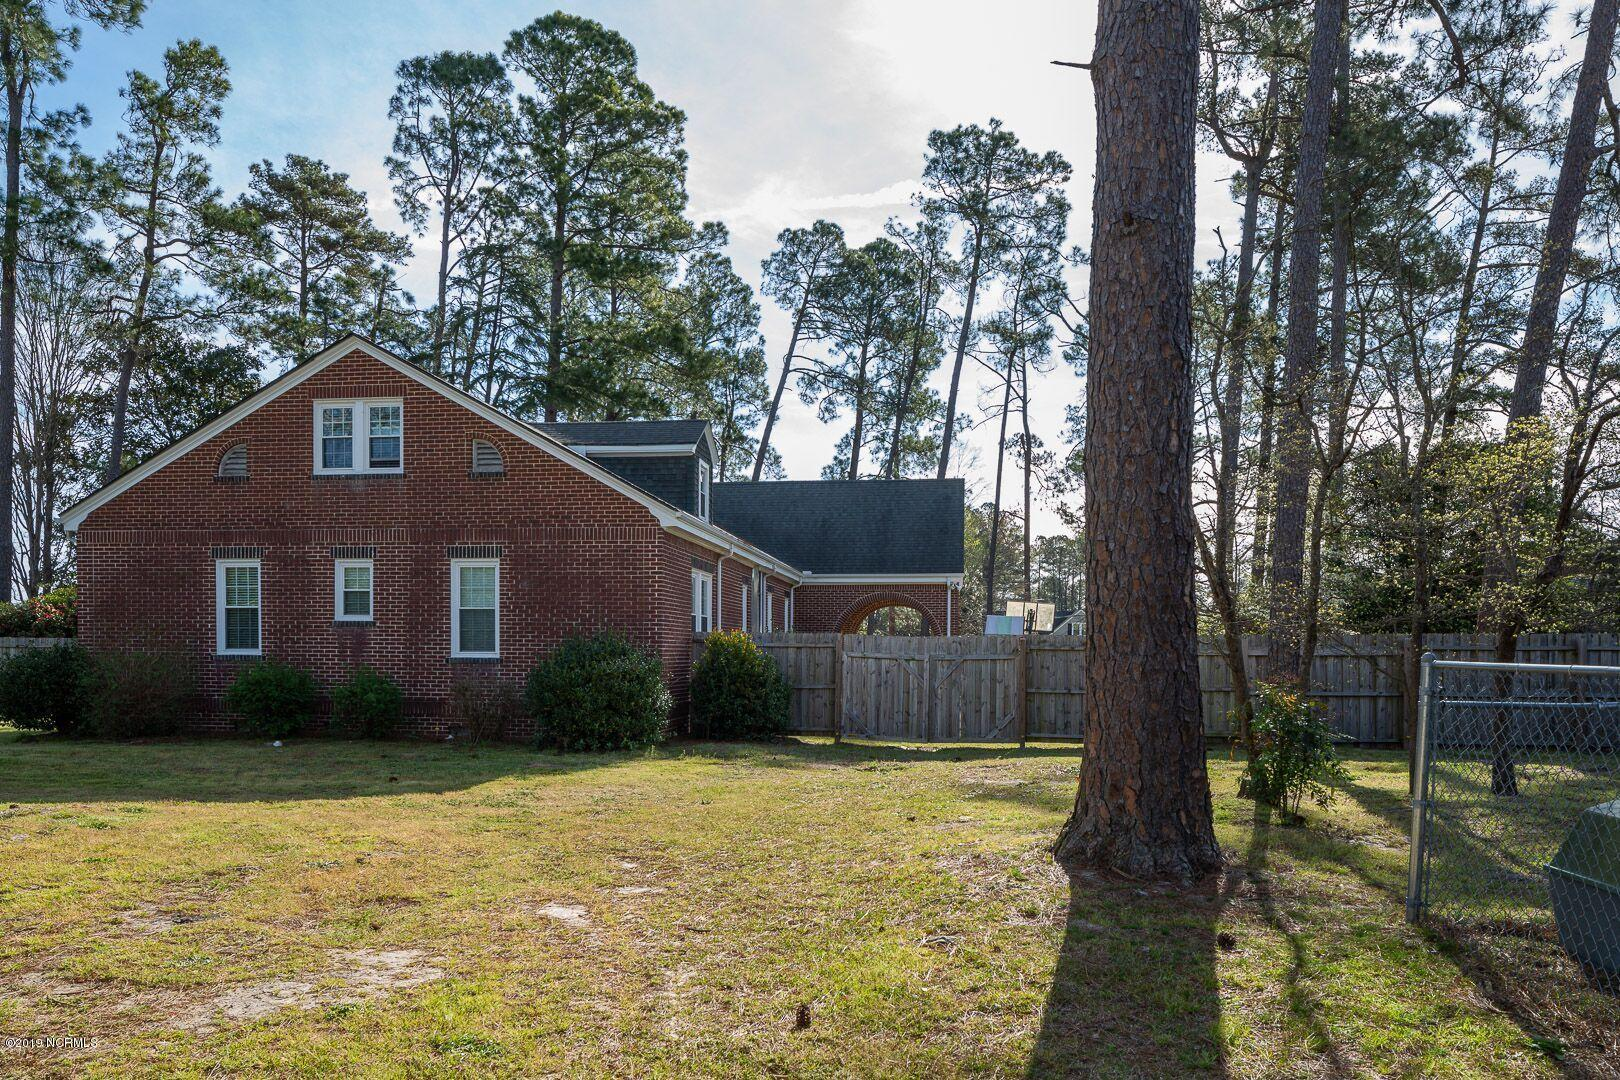 203 Main Street, Salemburg, North Carolina 28385, 4 Bedrooms Bedrooms, 5 Rooms Rooms,2 BathroomsBathrooms,Single family residence,For sale,Main,100189045